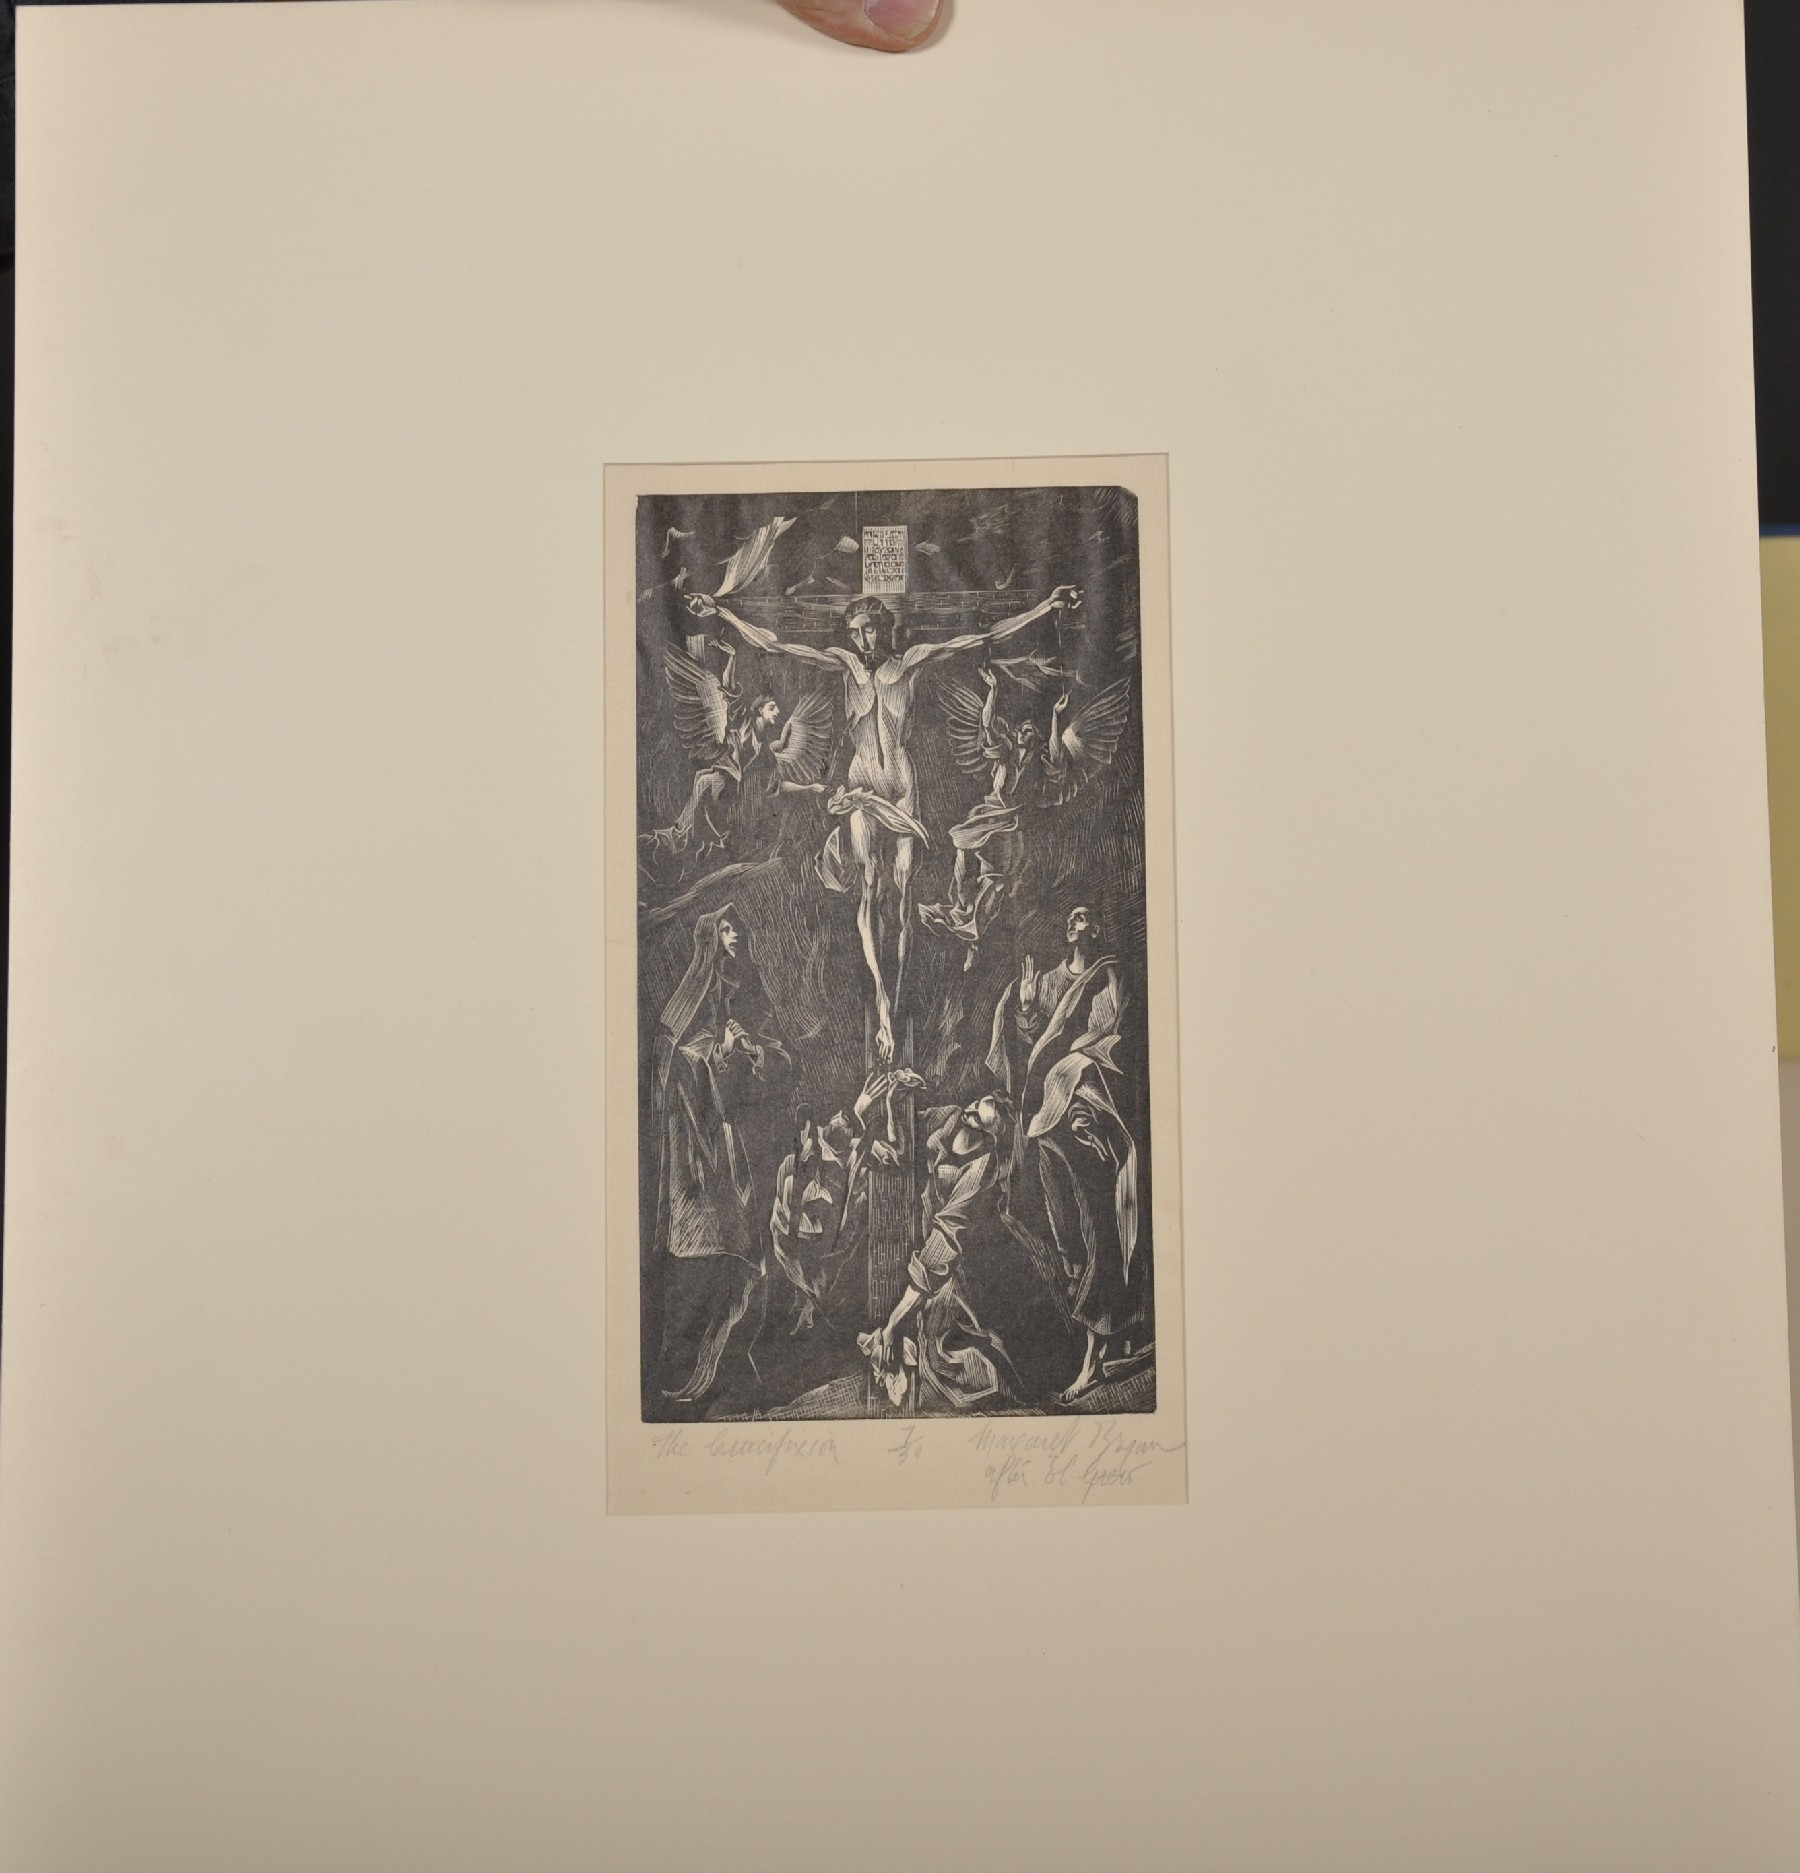 D. Margaret Bryan (19th - 20th Century) British. 'The Crucifixion', after El Greco, Woodcut, Signed, - Image 2 of 3